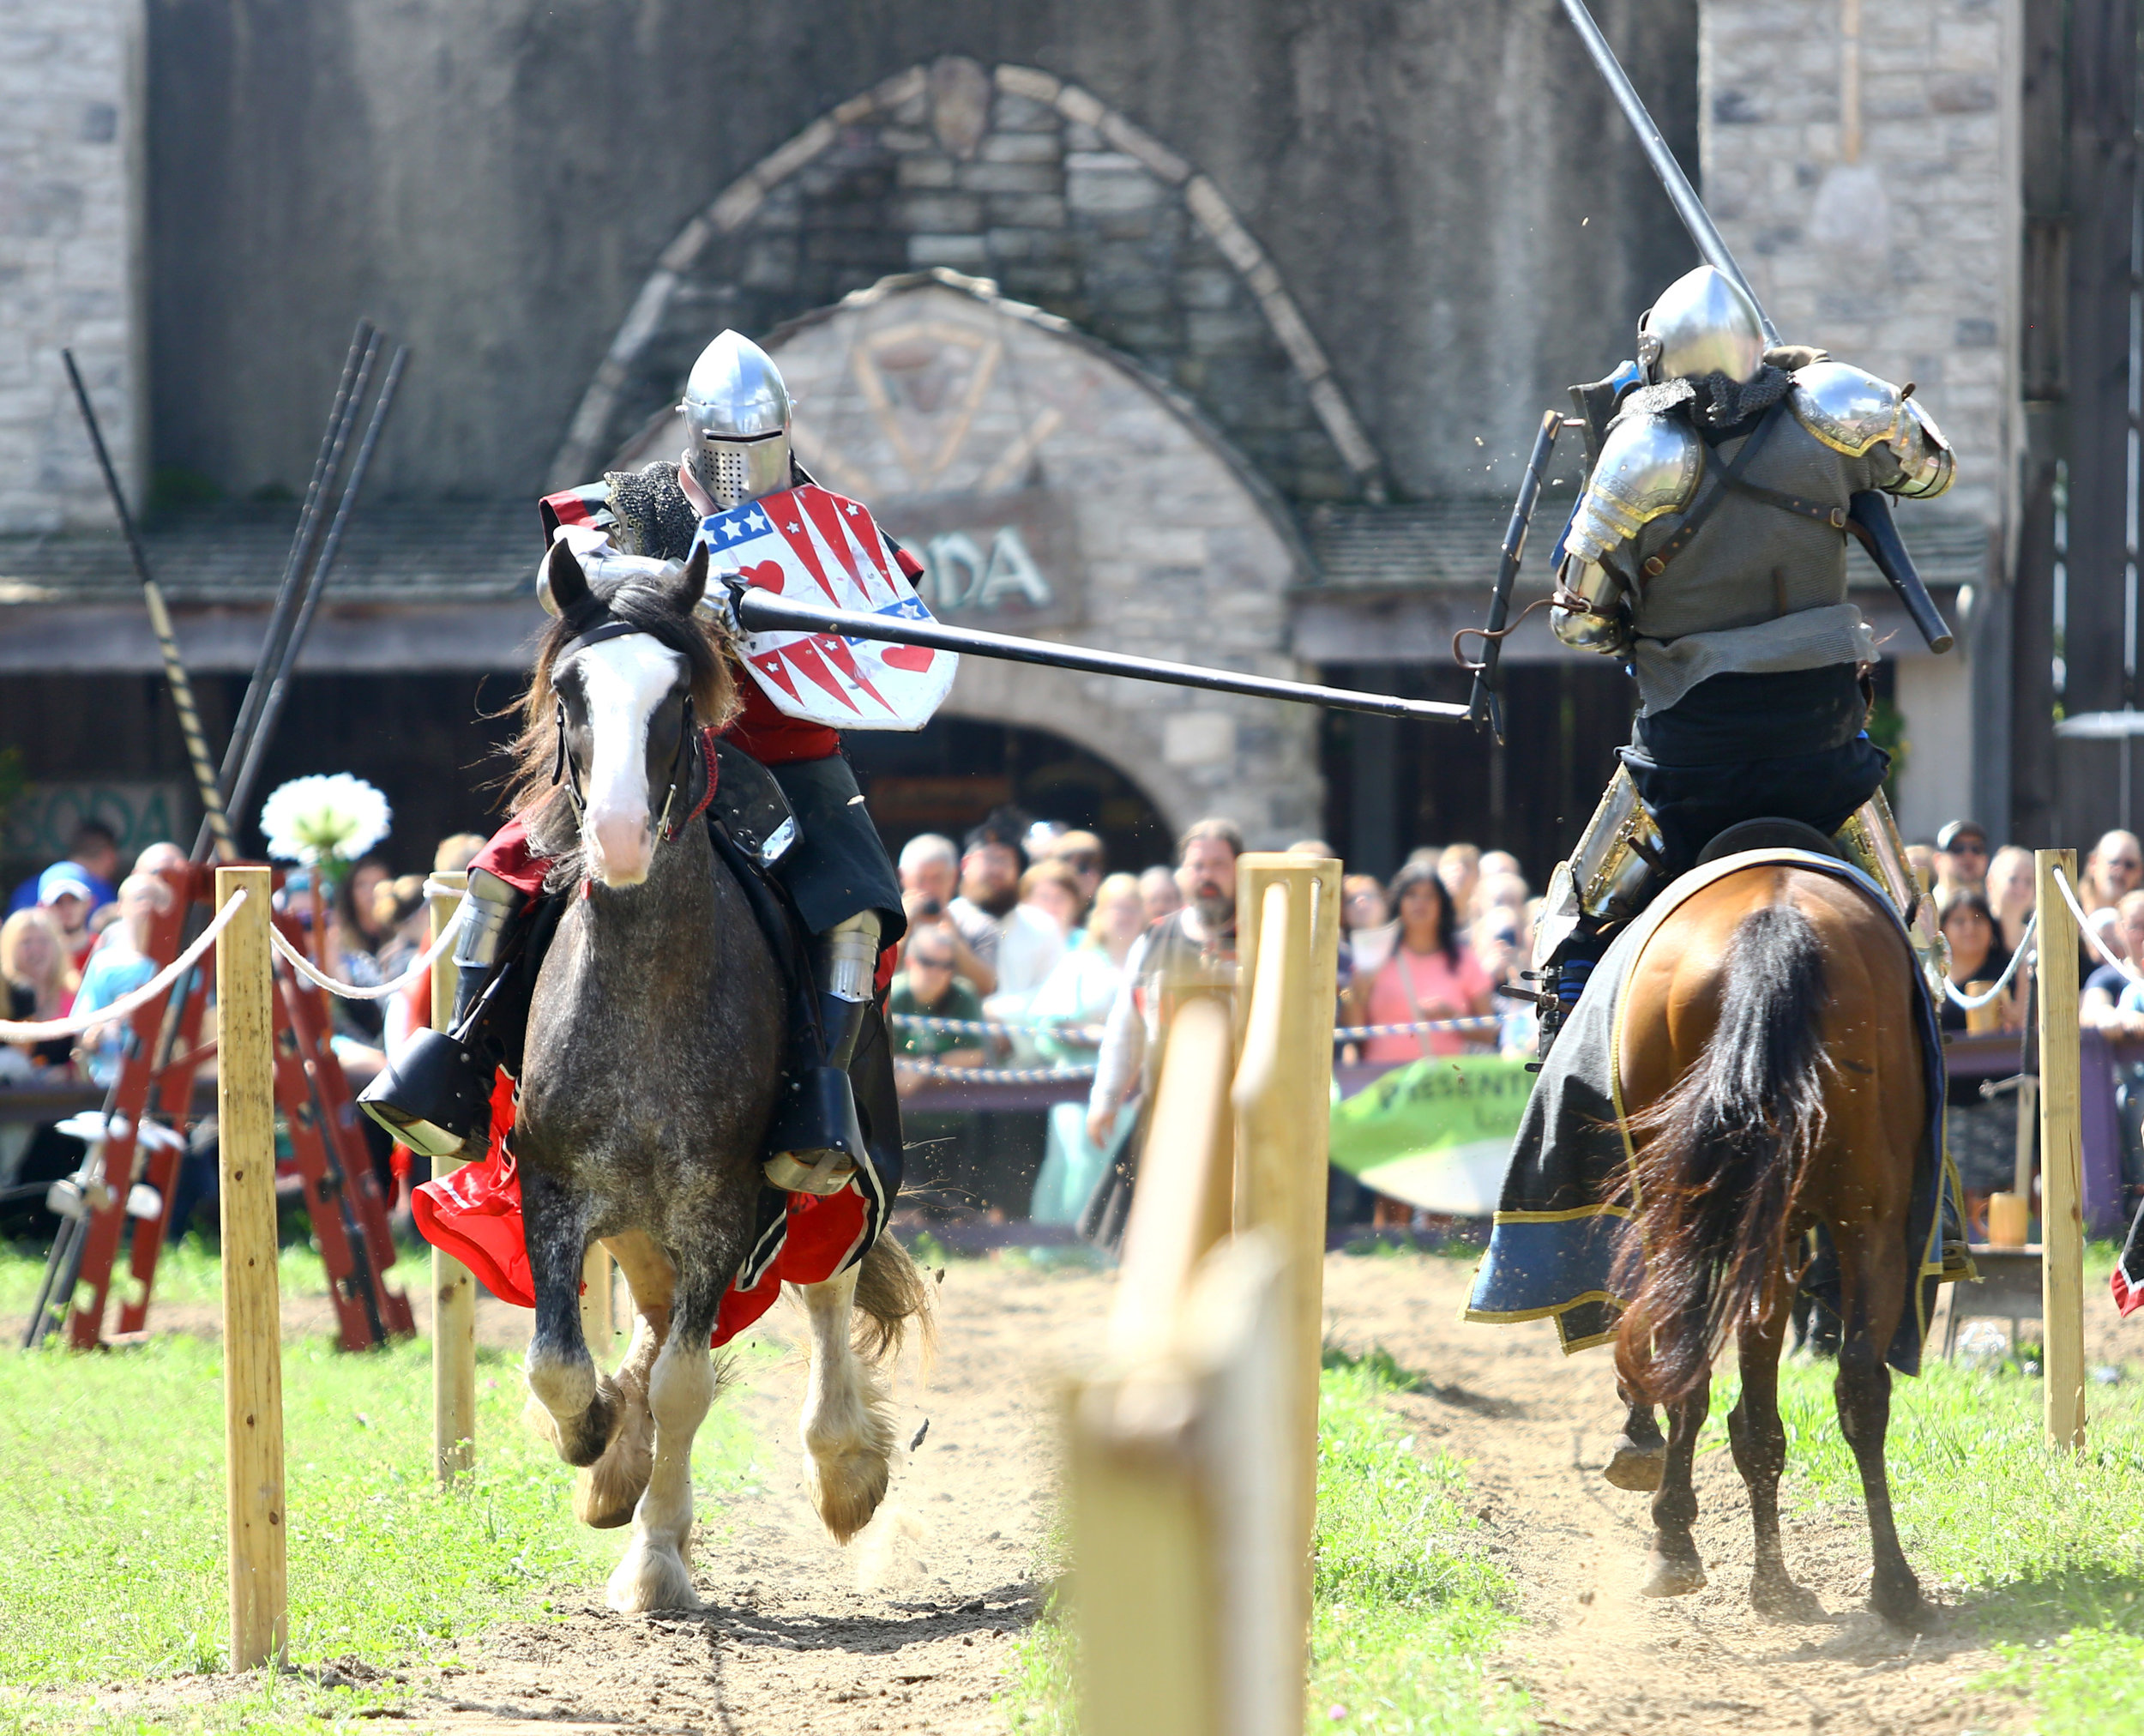 Dale Walter of Howell, Mi. breaks a lance on the shield of Kevin Statz of Hebbron, In. as part of the jousting demonstration at the Michigan Renaissance Festival in Holly Michigan on Sunday, Sept. 18.